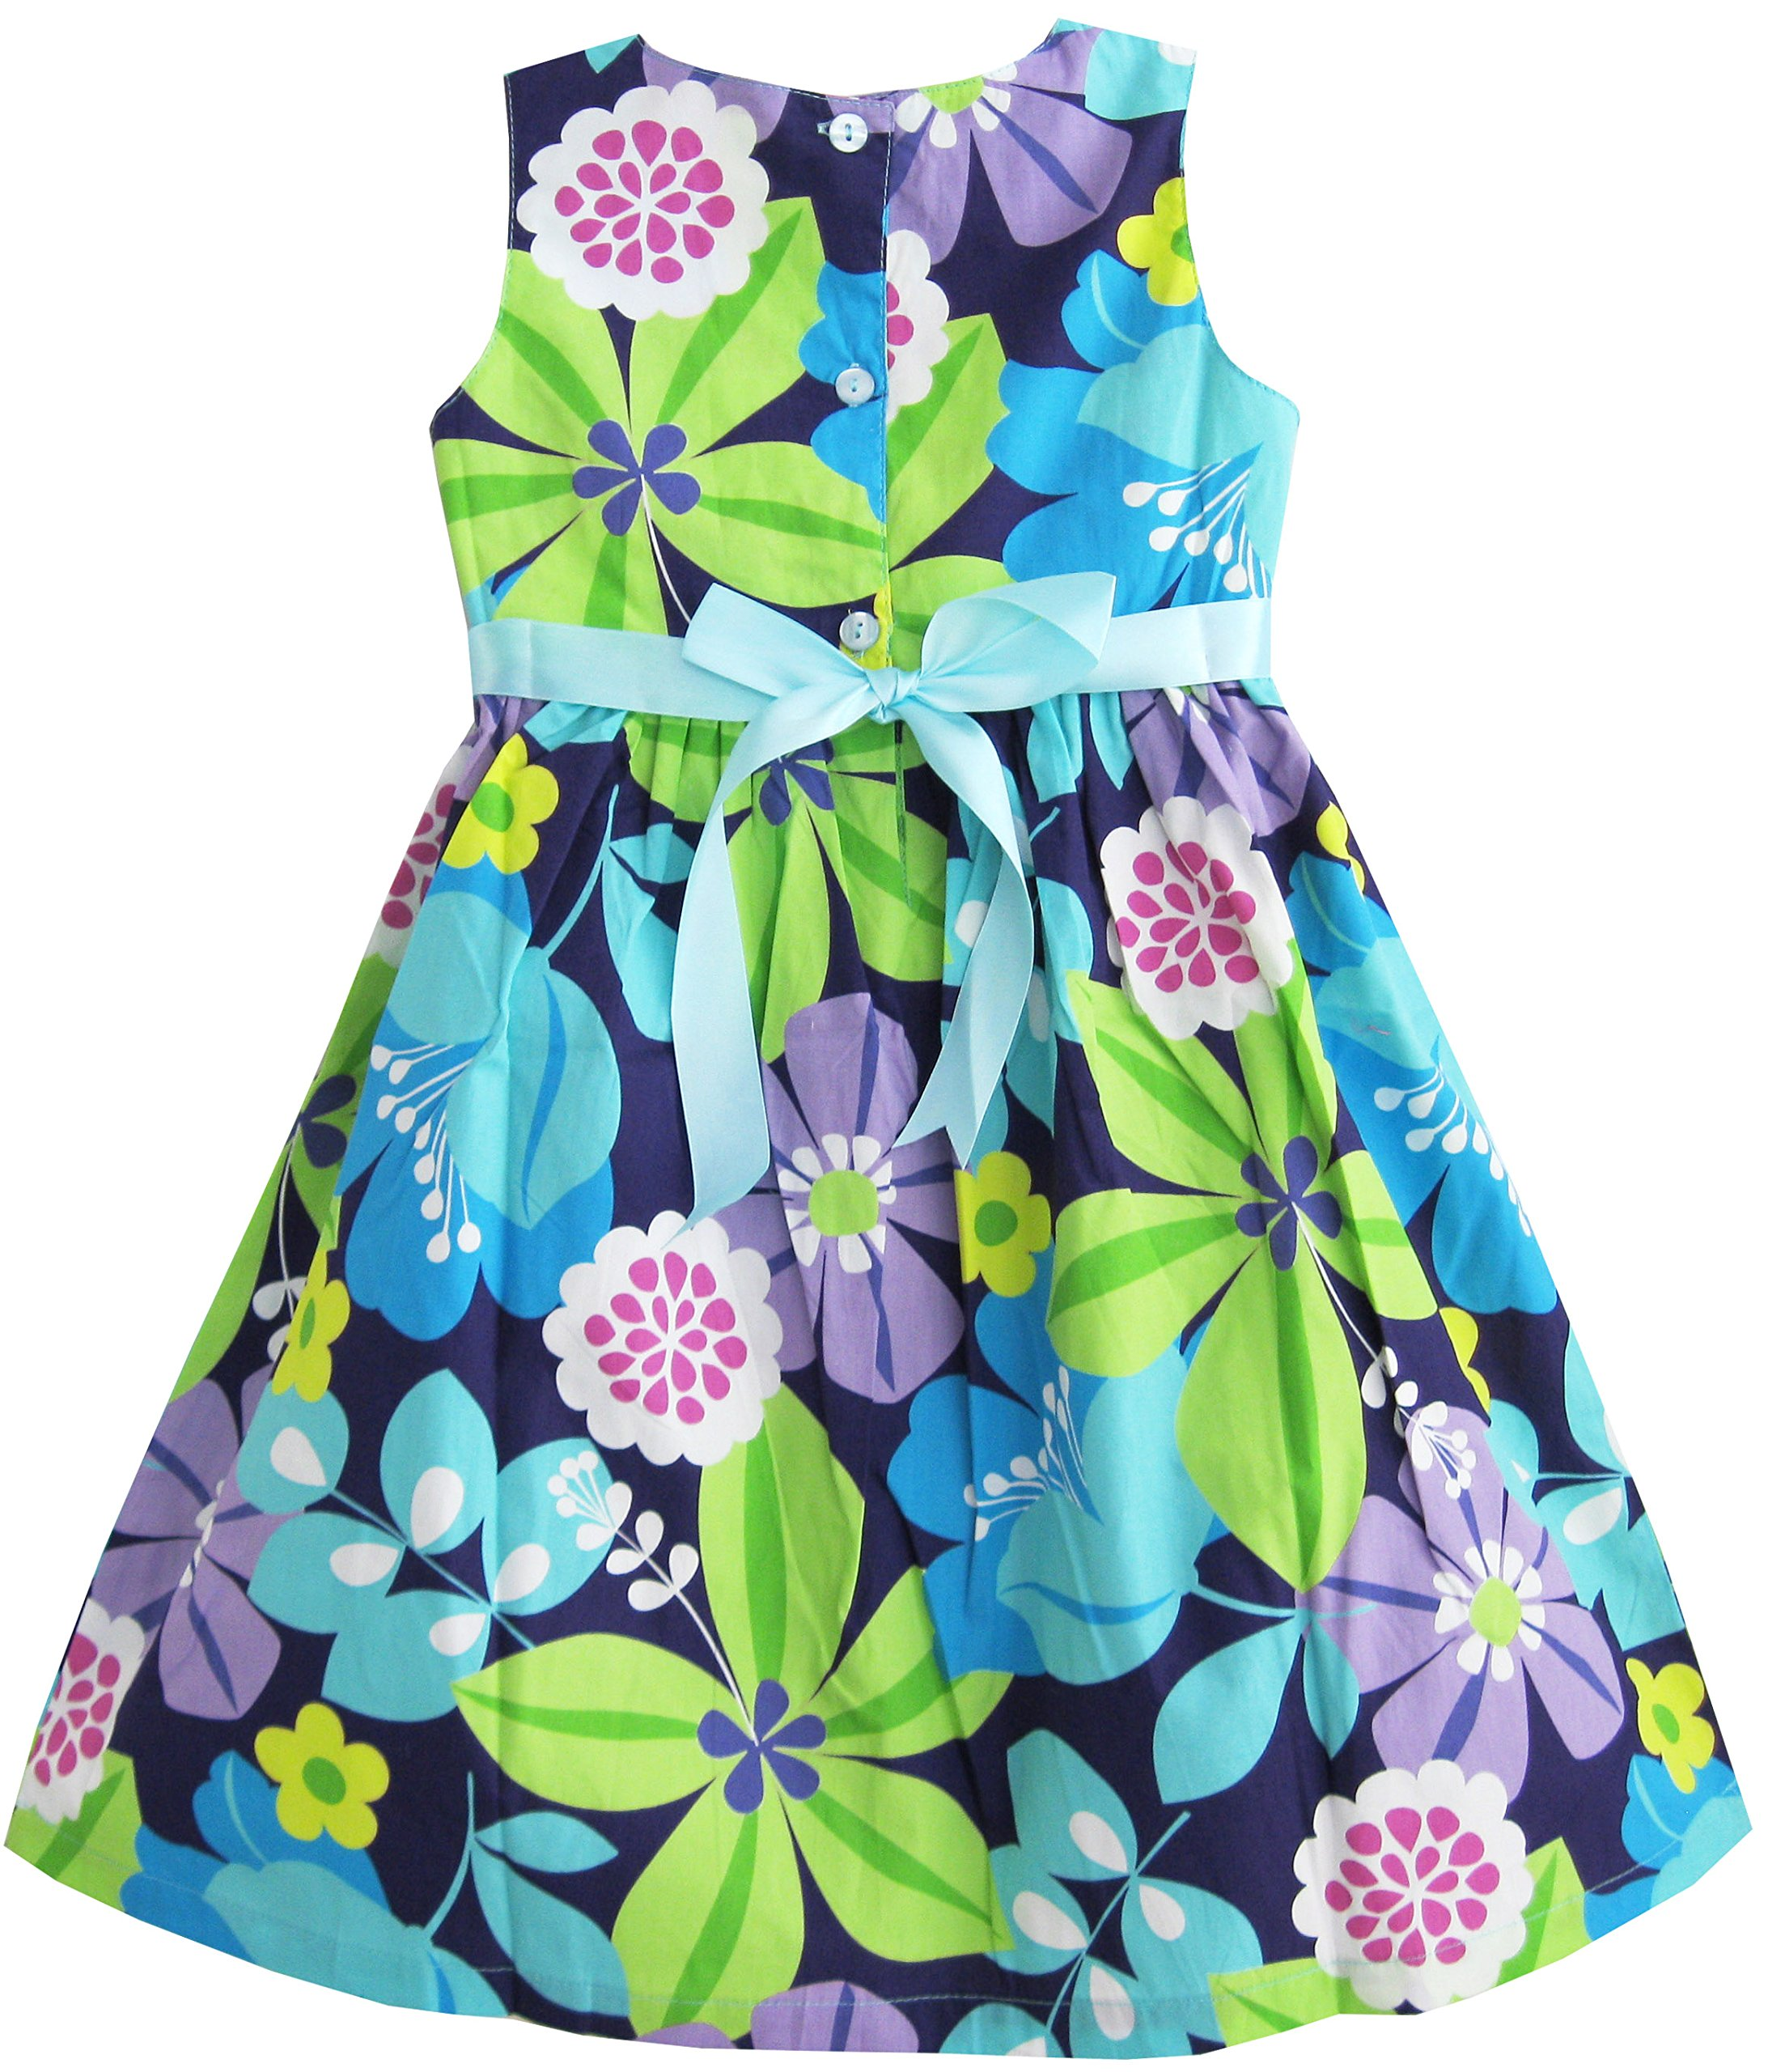 Flower Print Fashion Girls Party Sundress